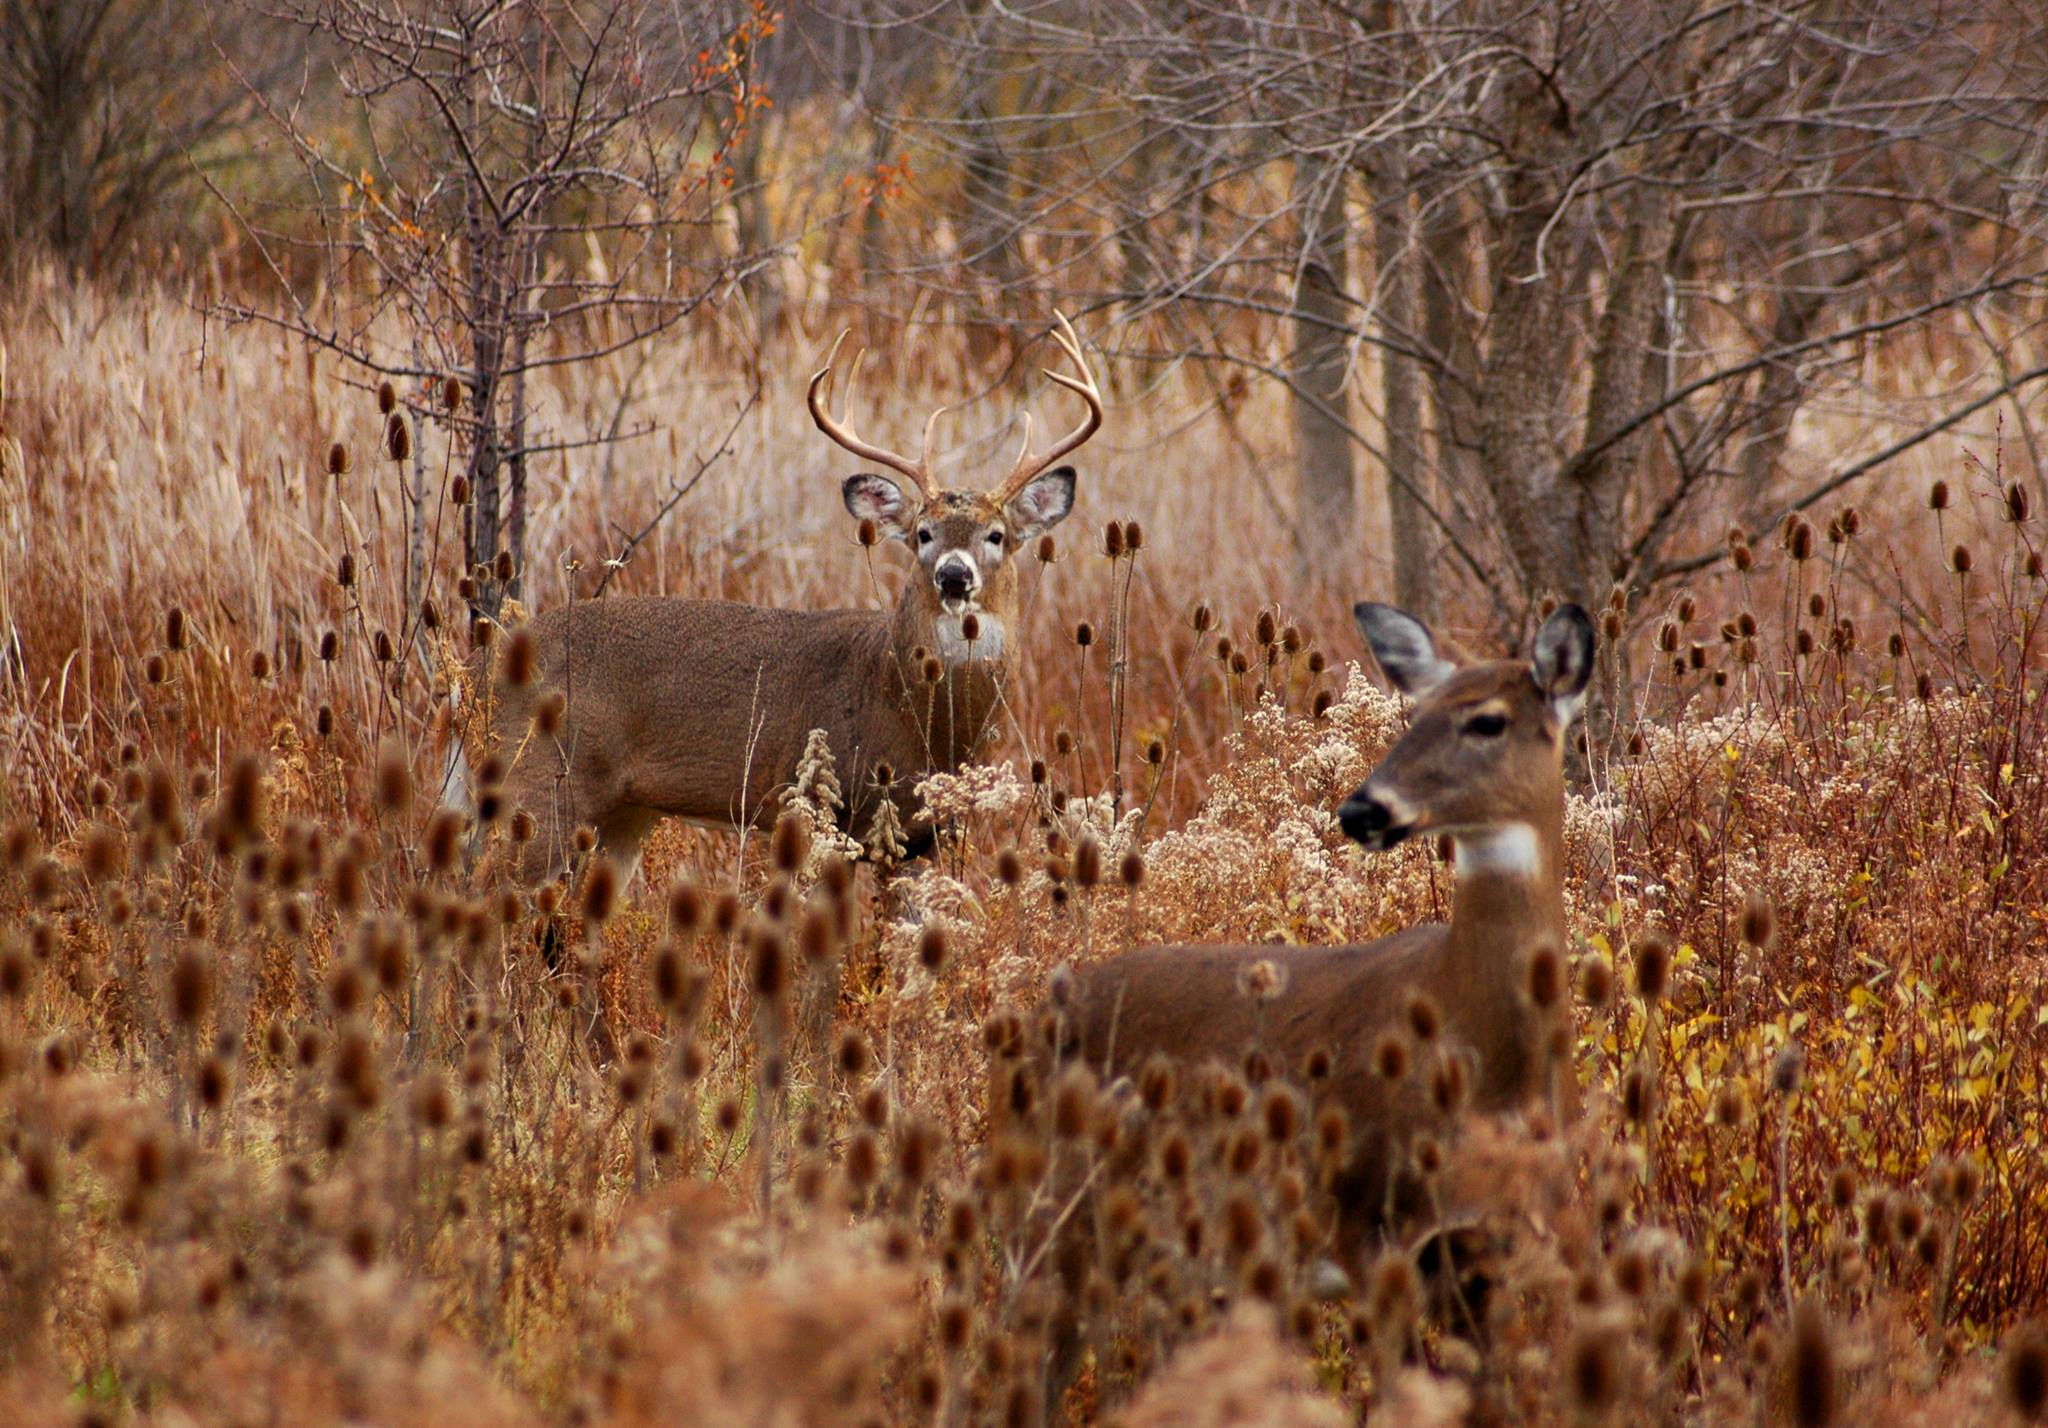 Archers get ready for the rut love is in the air as bucks seek out does wed oct 11 2017